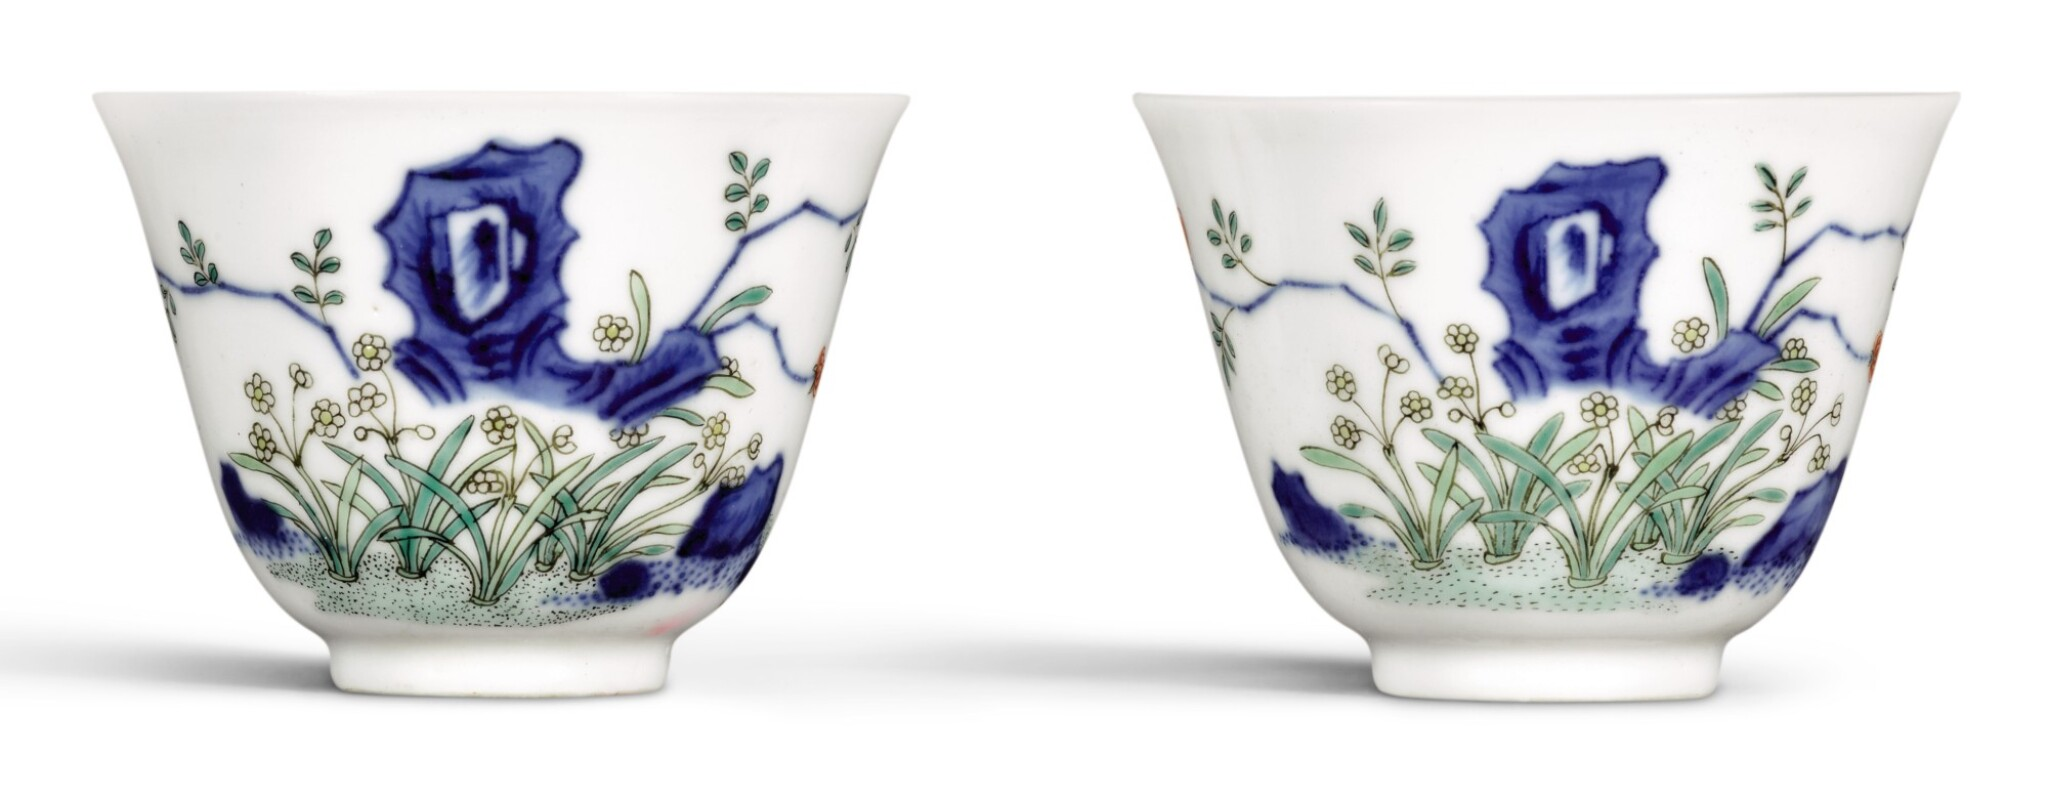 View 1 of Lot 265. A PAIR OF FAMILLE-VERTE 'NARCISSUS' CUPS, LATE QING DYNASTY | 晚清 五彩水仙花紋盃一對.